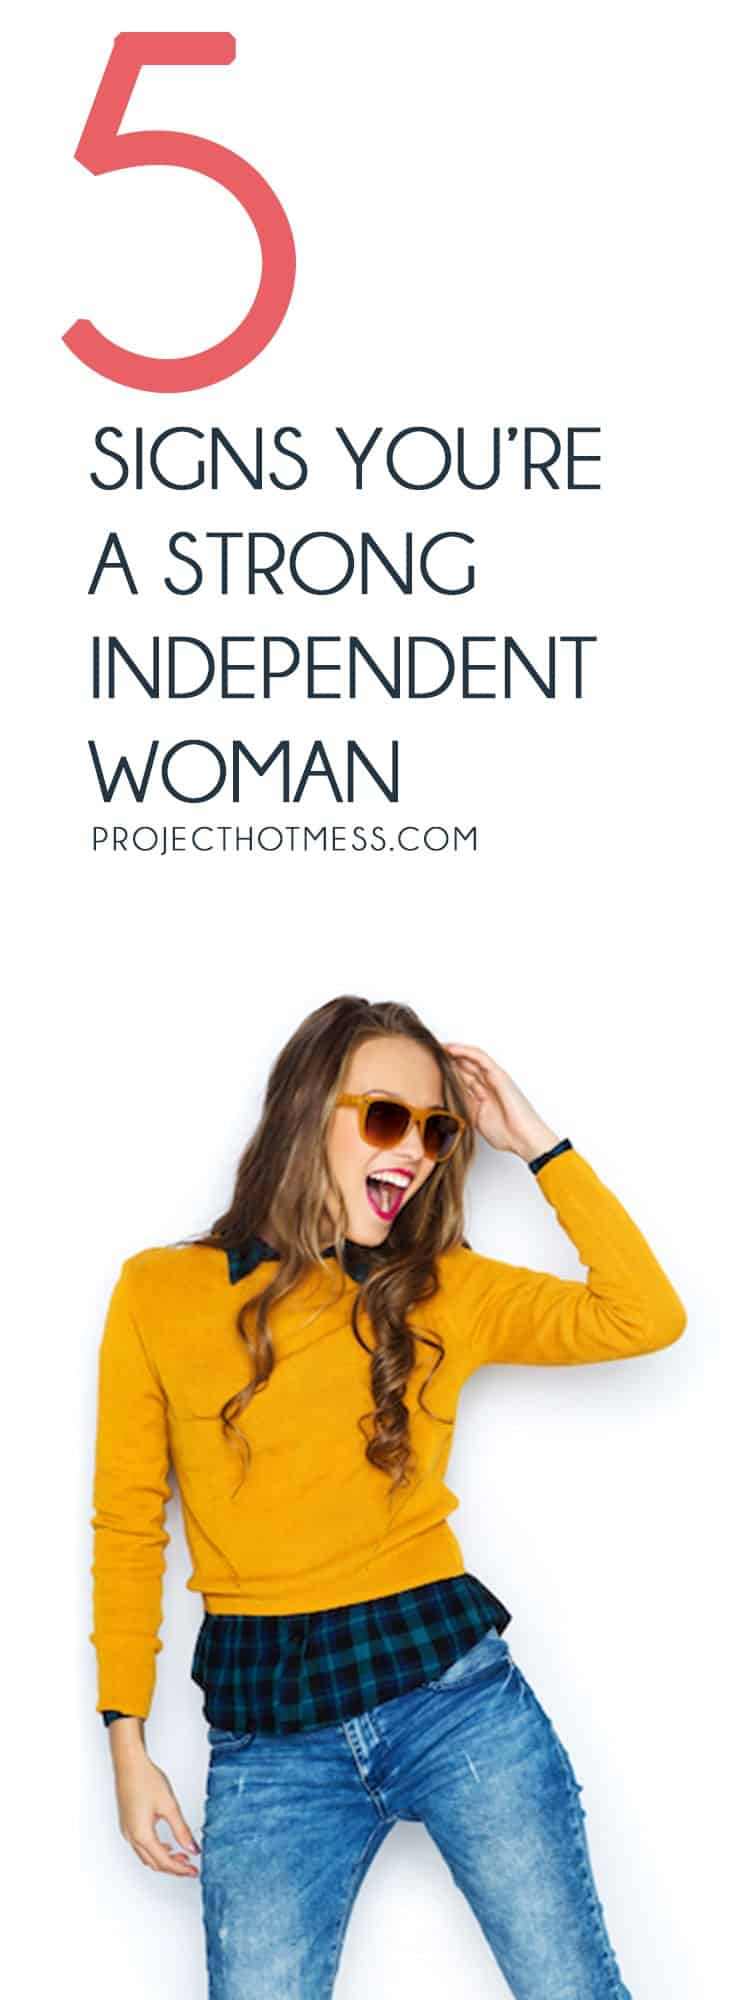 Sometimes we don't even realise how strong we are as women - but the truth is, you are the only one who can judge if you're a strong, independent woman (because it's all about how you feel about yourself). But to help you, here are some signs you're a strong independent woman.